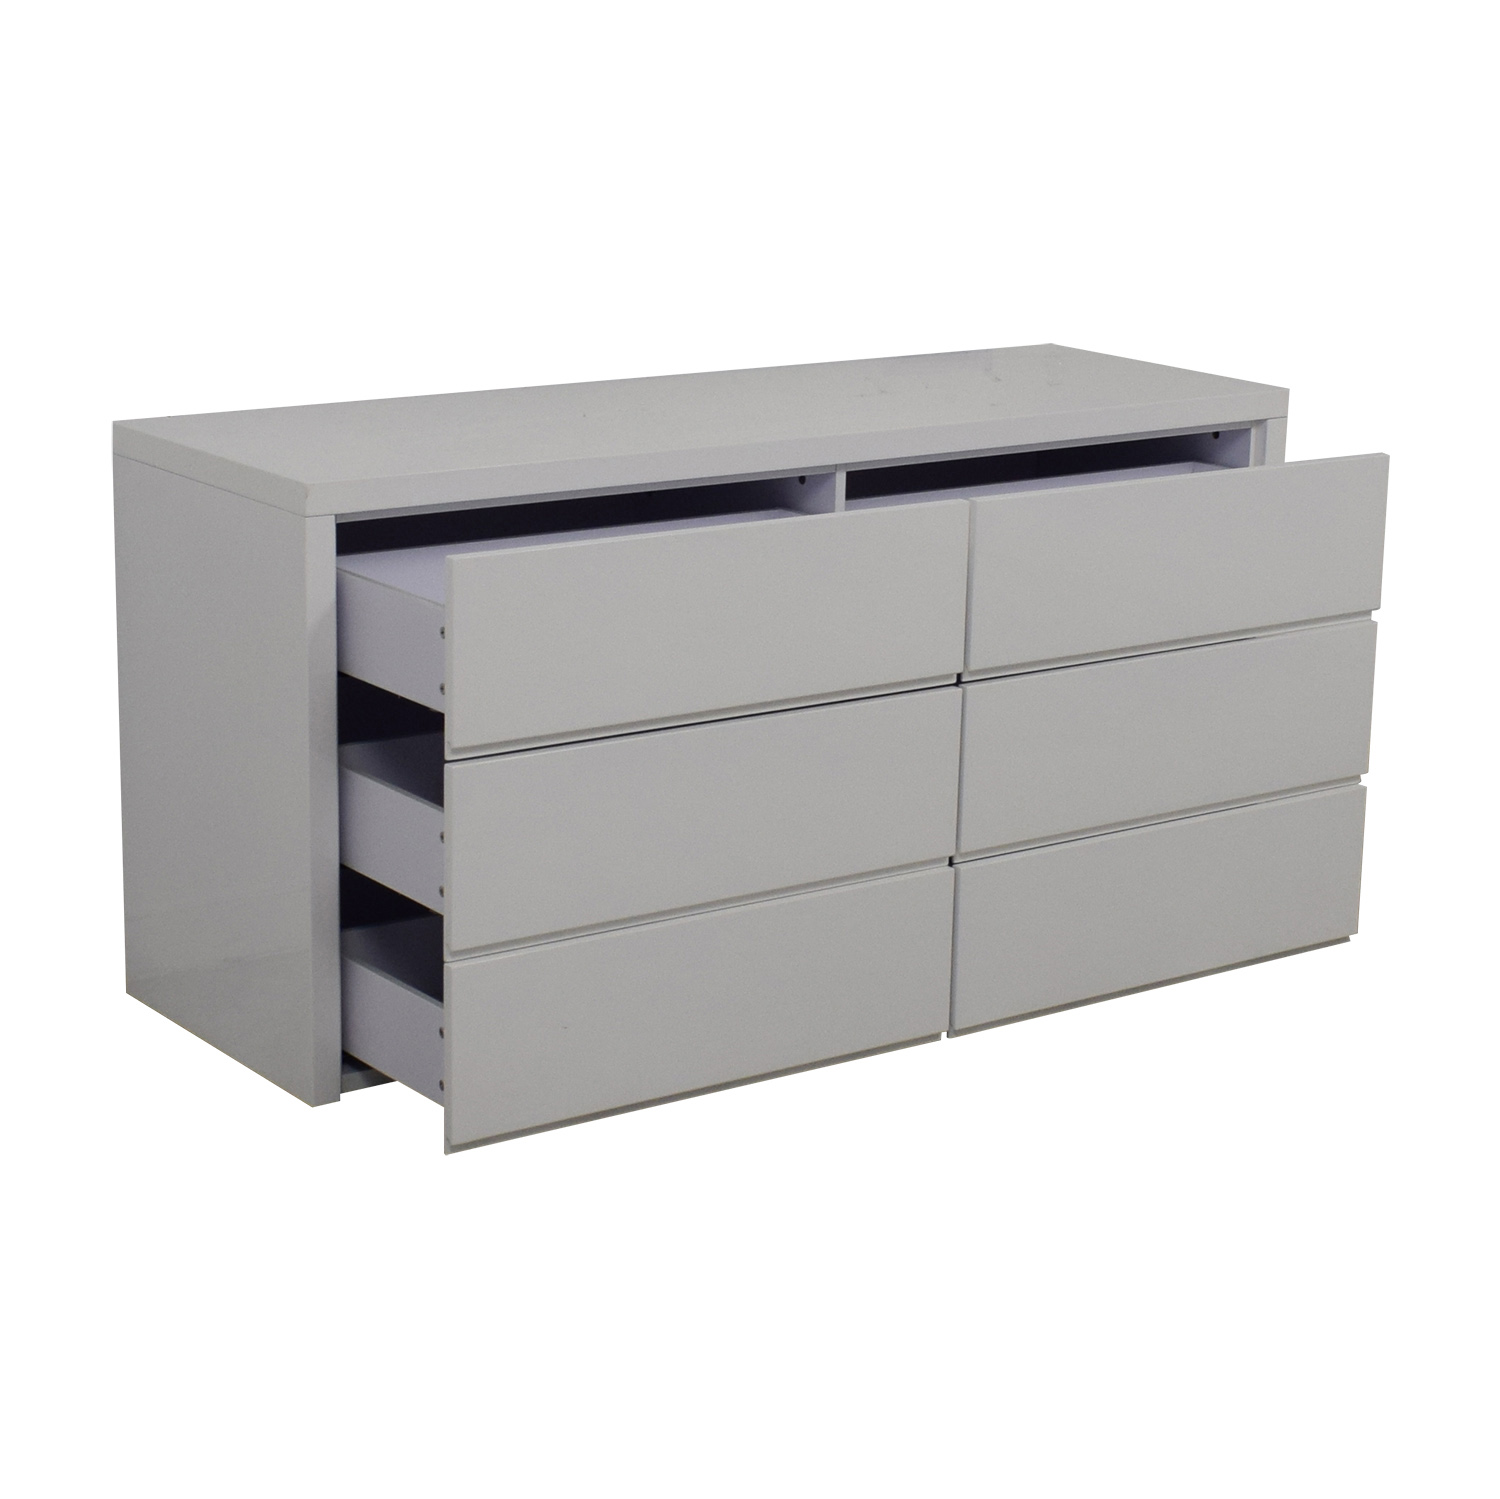 Modani Modani Dino White Six-Drawer Dresser nyc